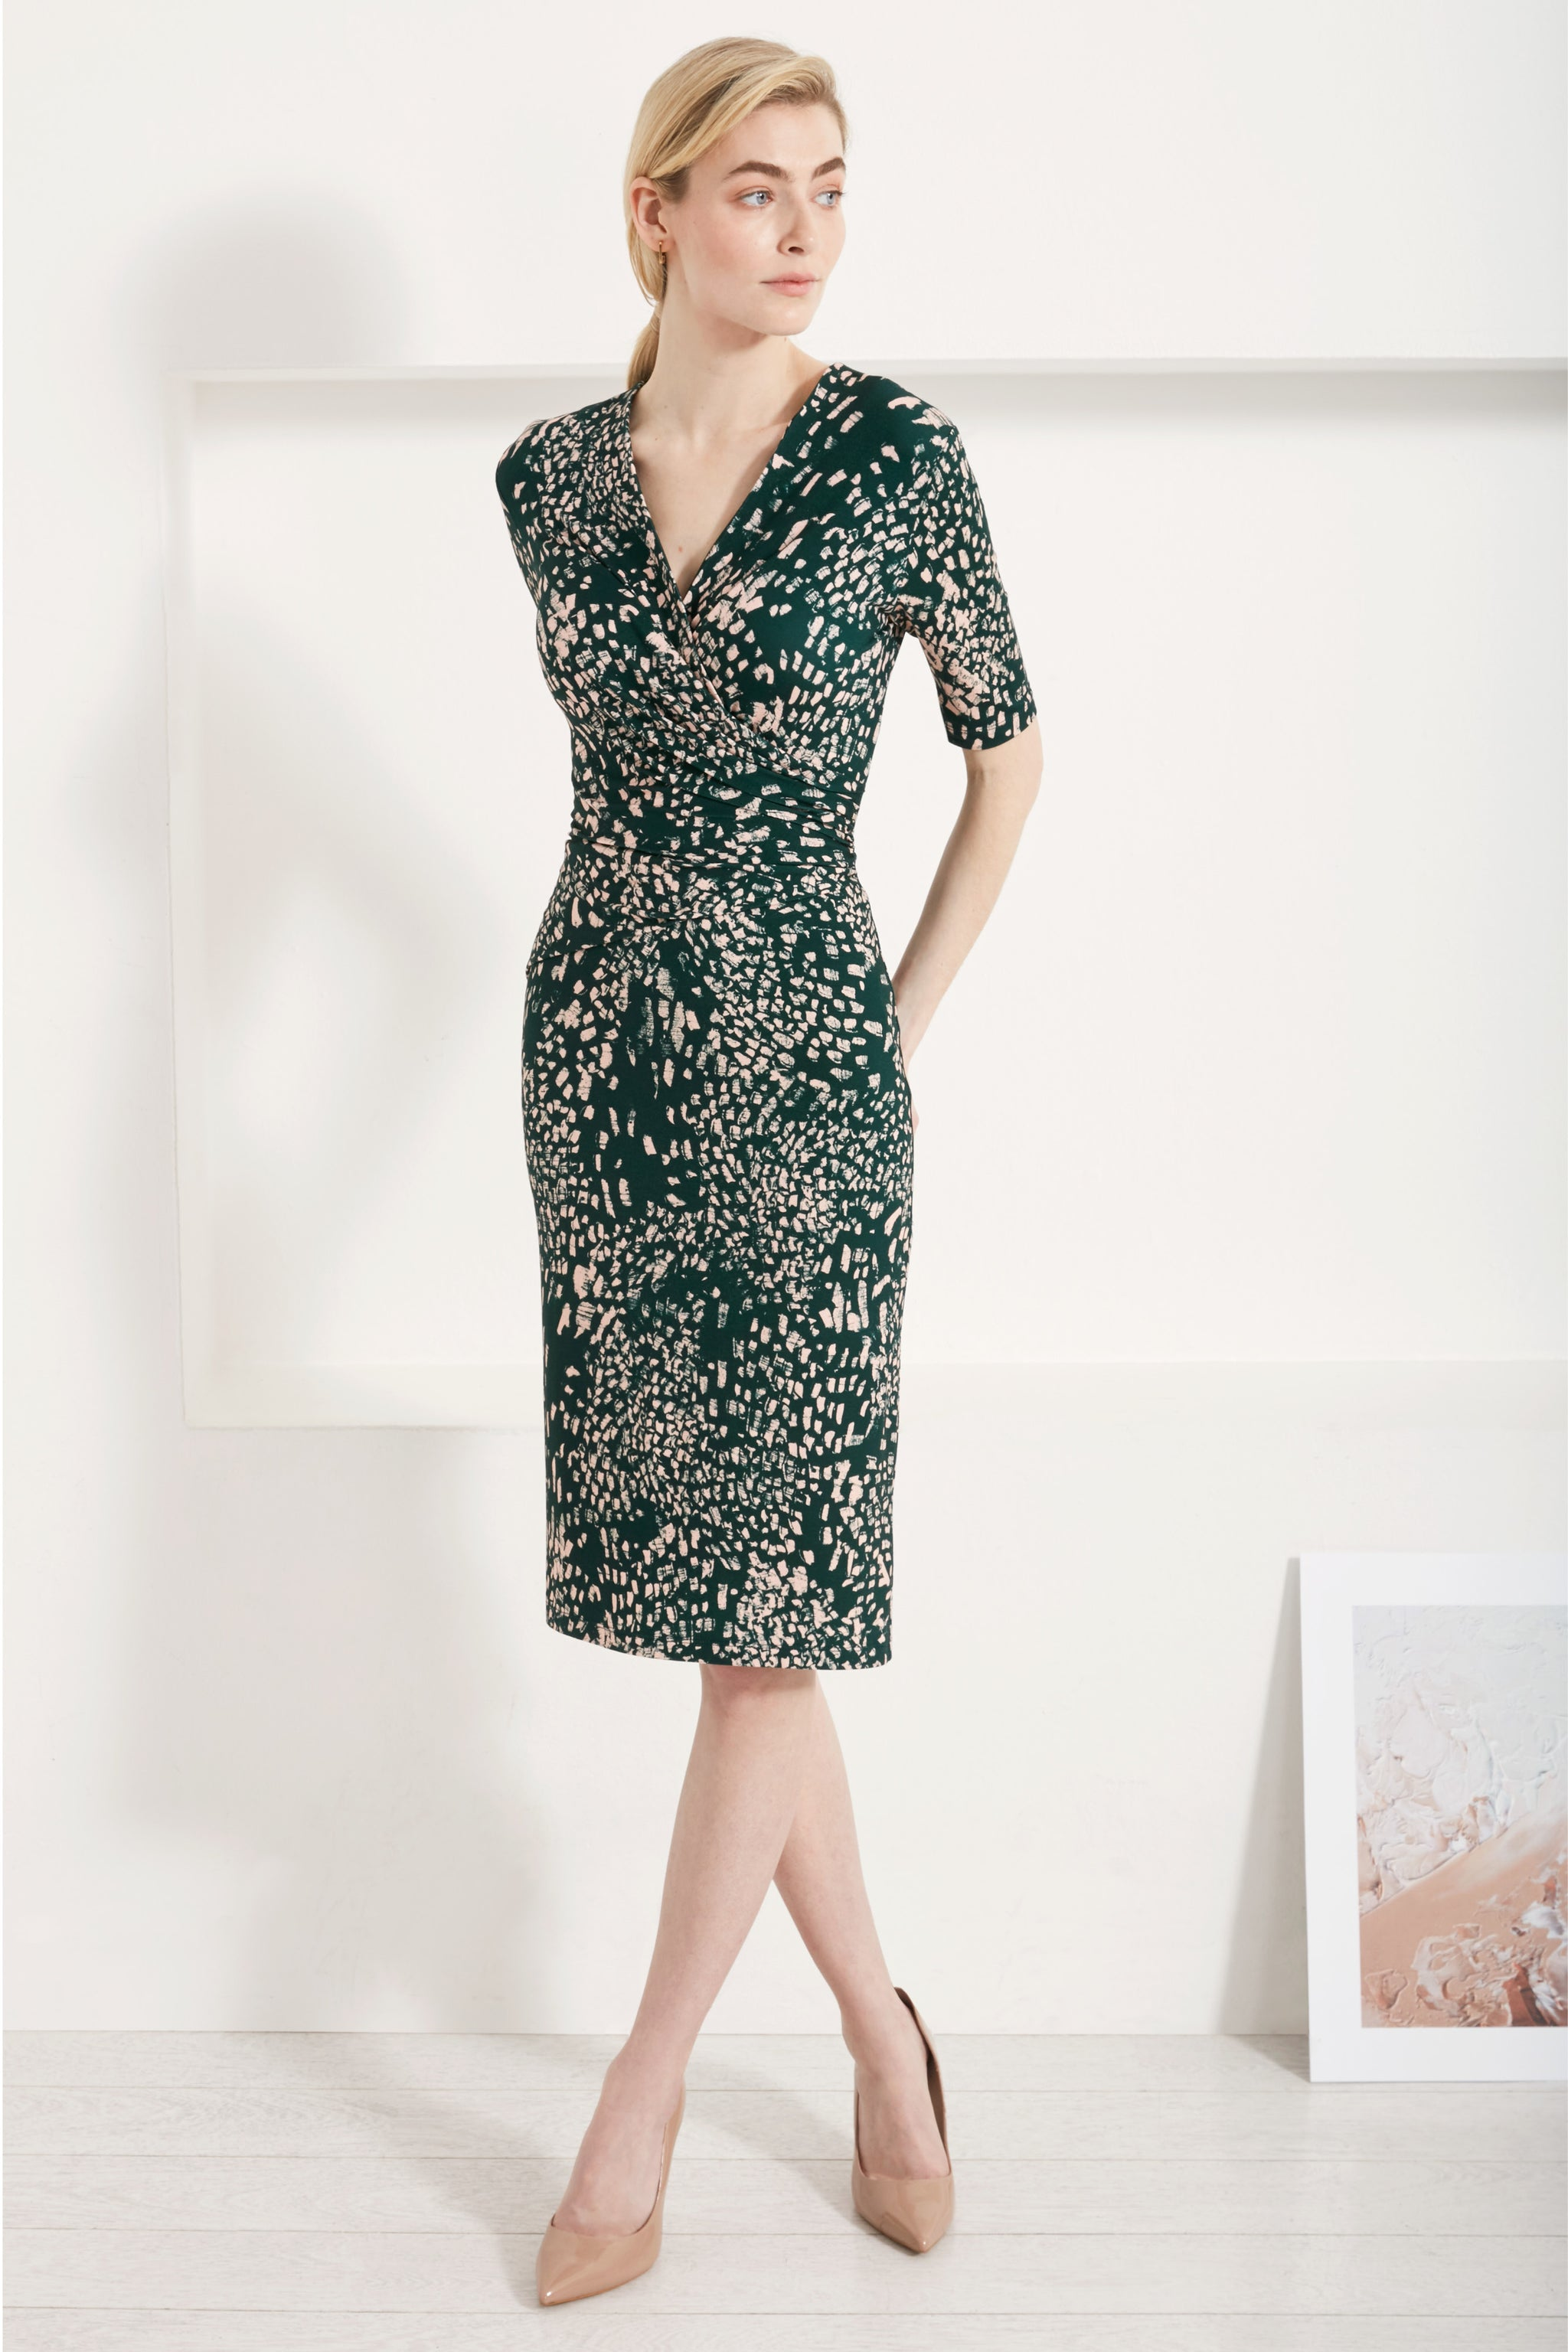 Camber Green Feather Print Dress